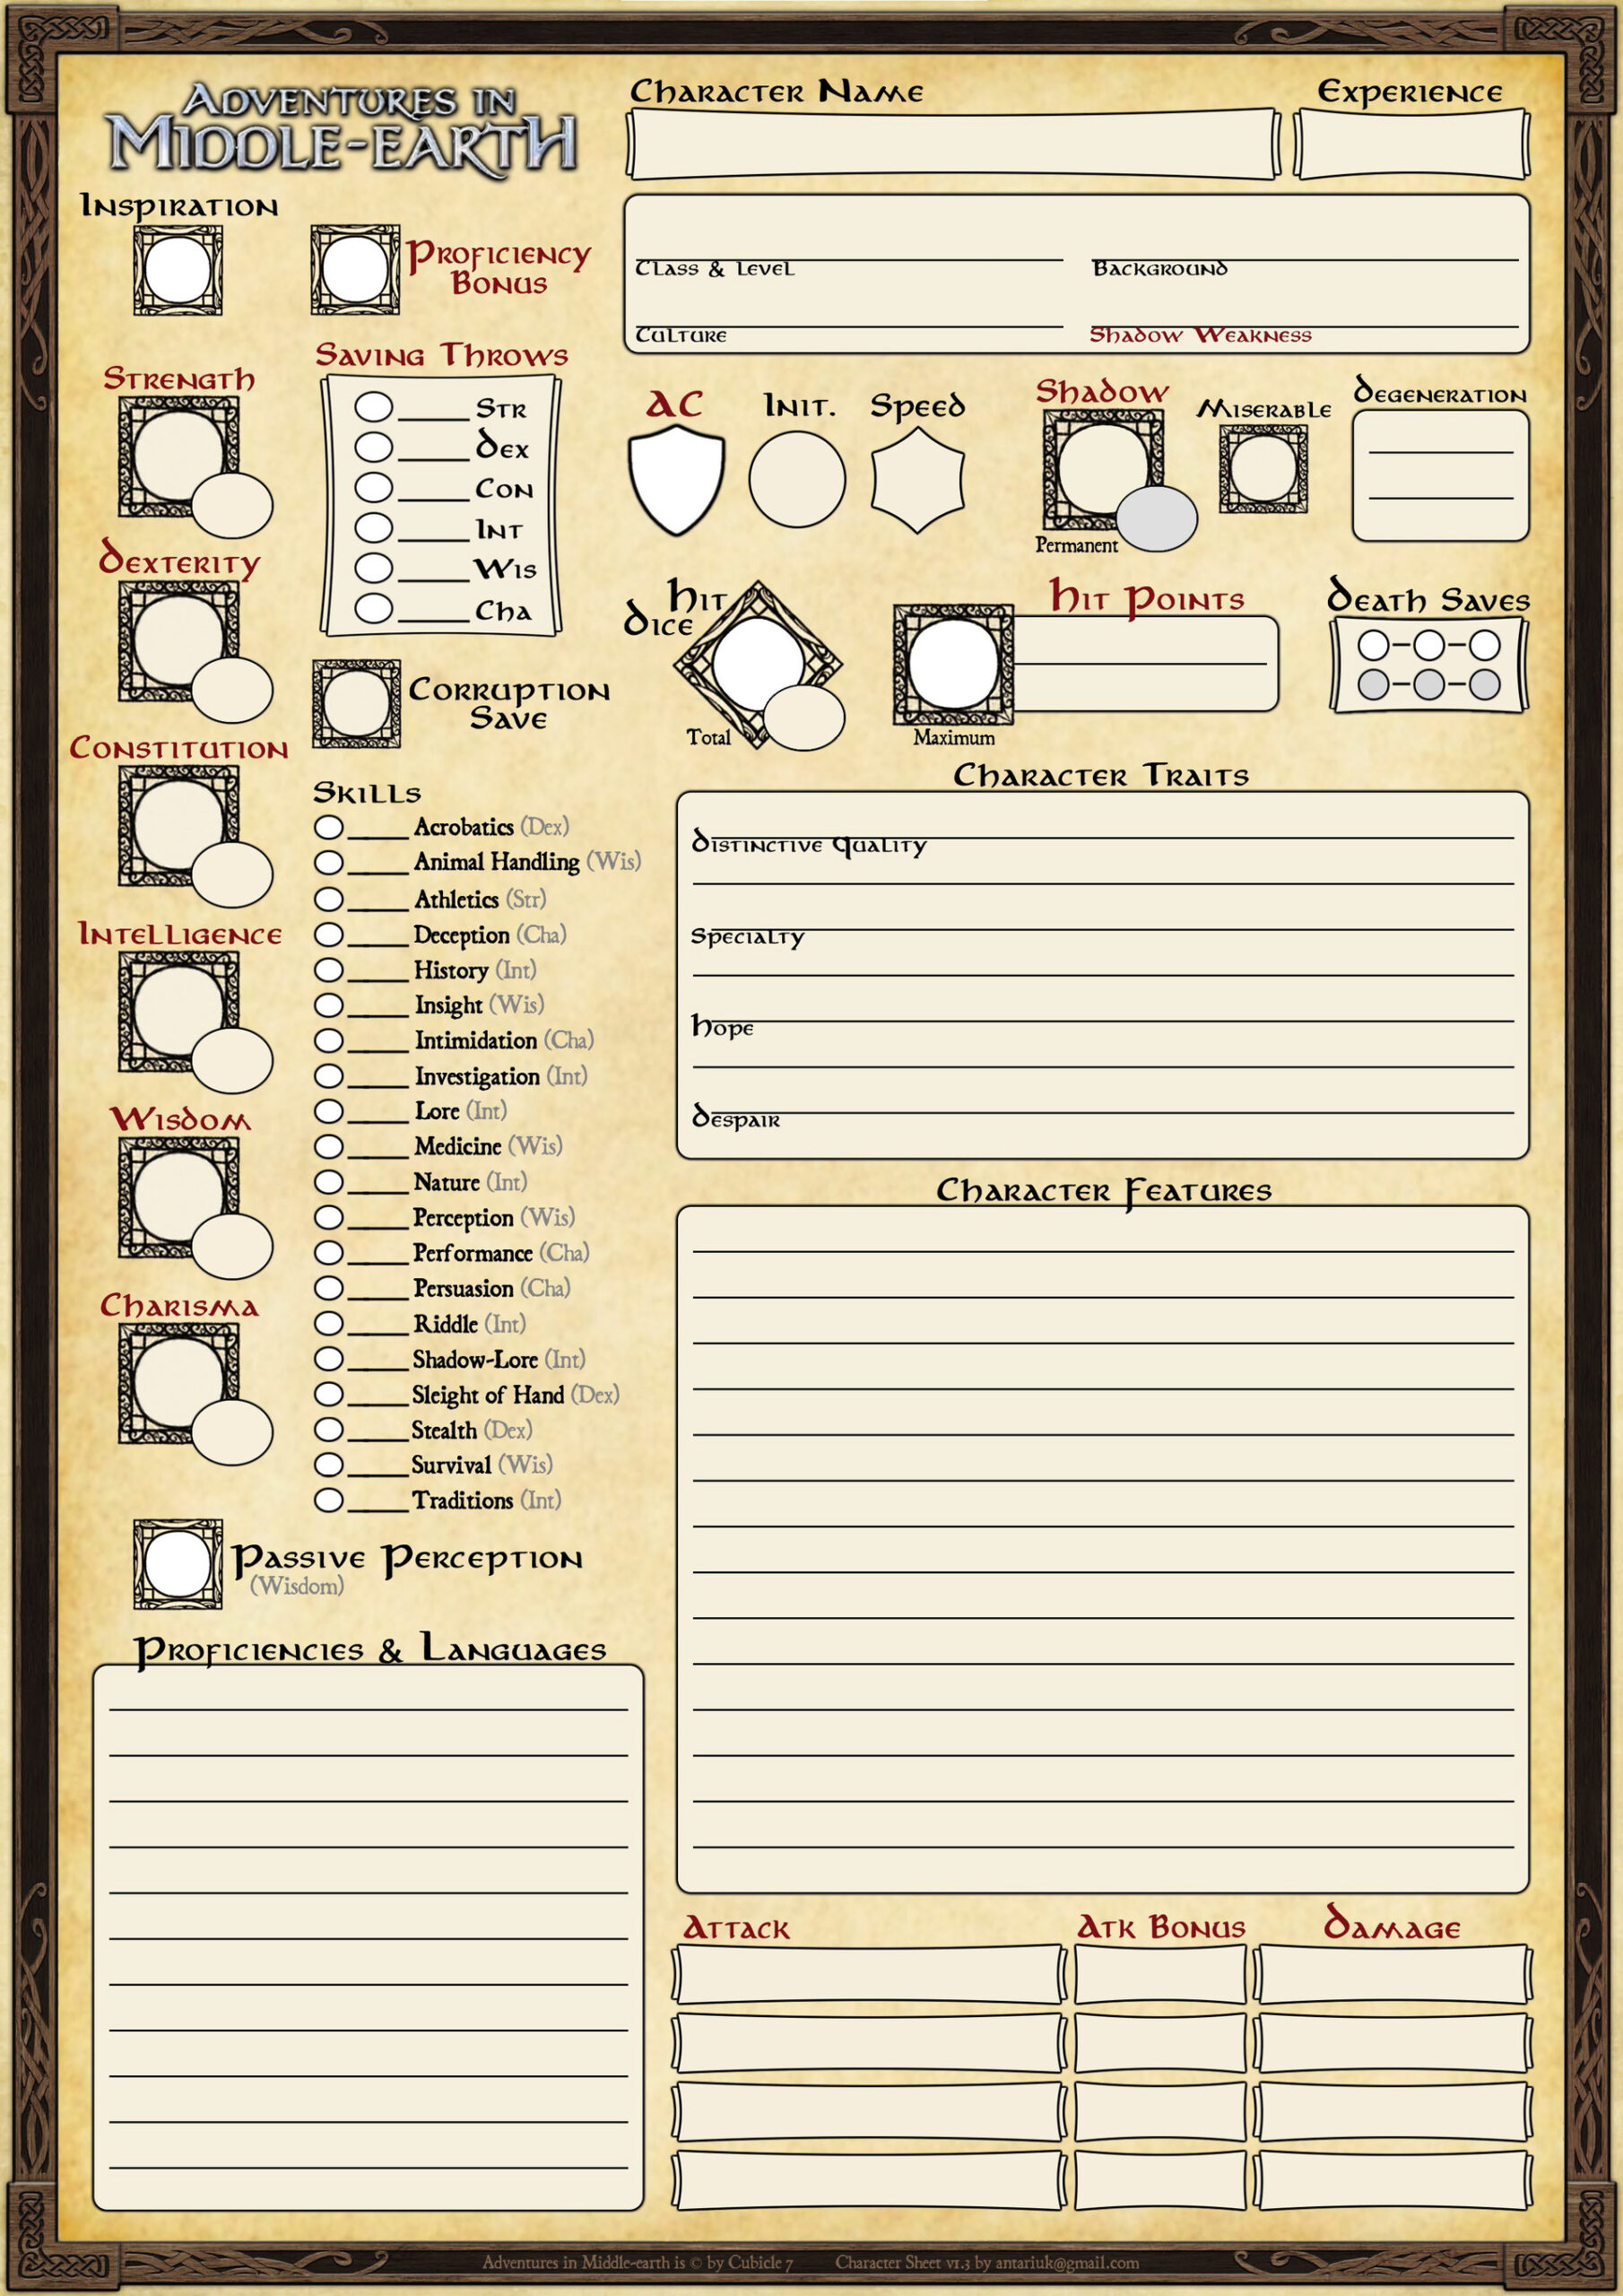 arne haschen adventures in middle earth character sheet resume 3pages color v1 tweet Resume D&d Character Sheet Resume